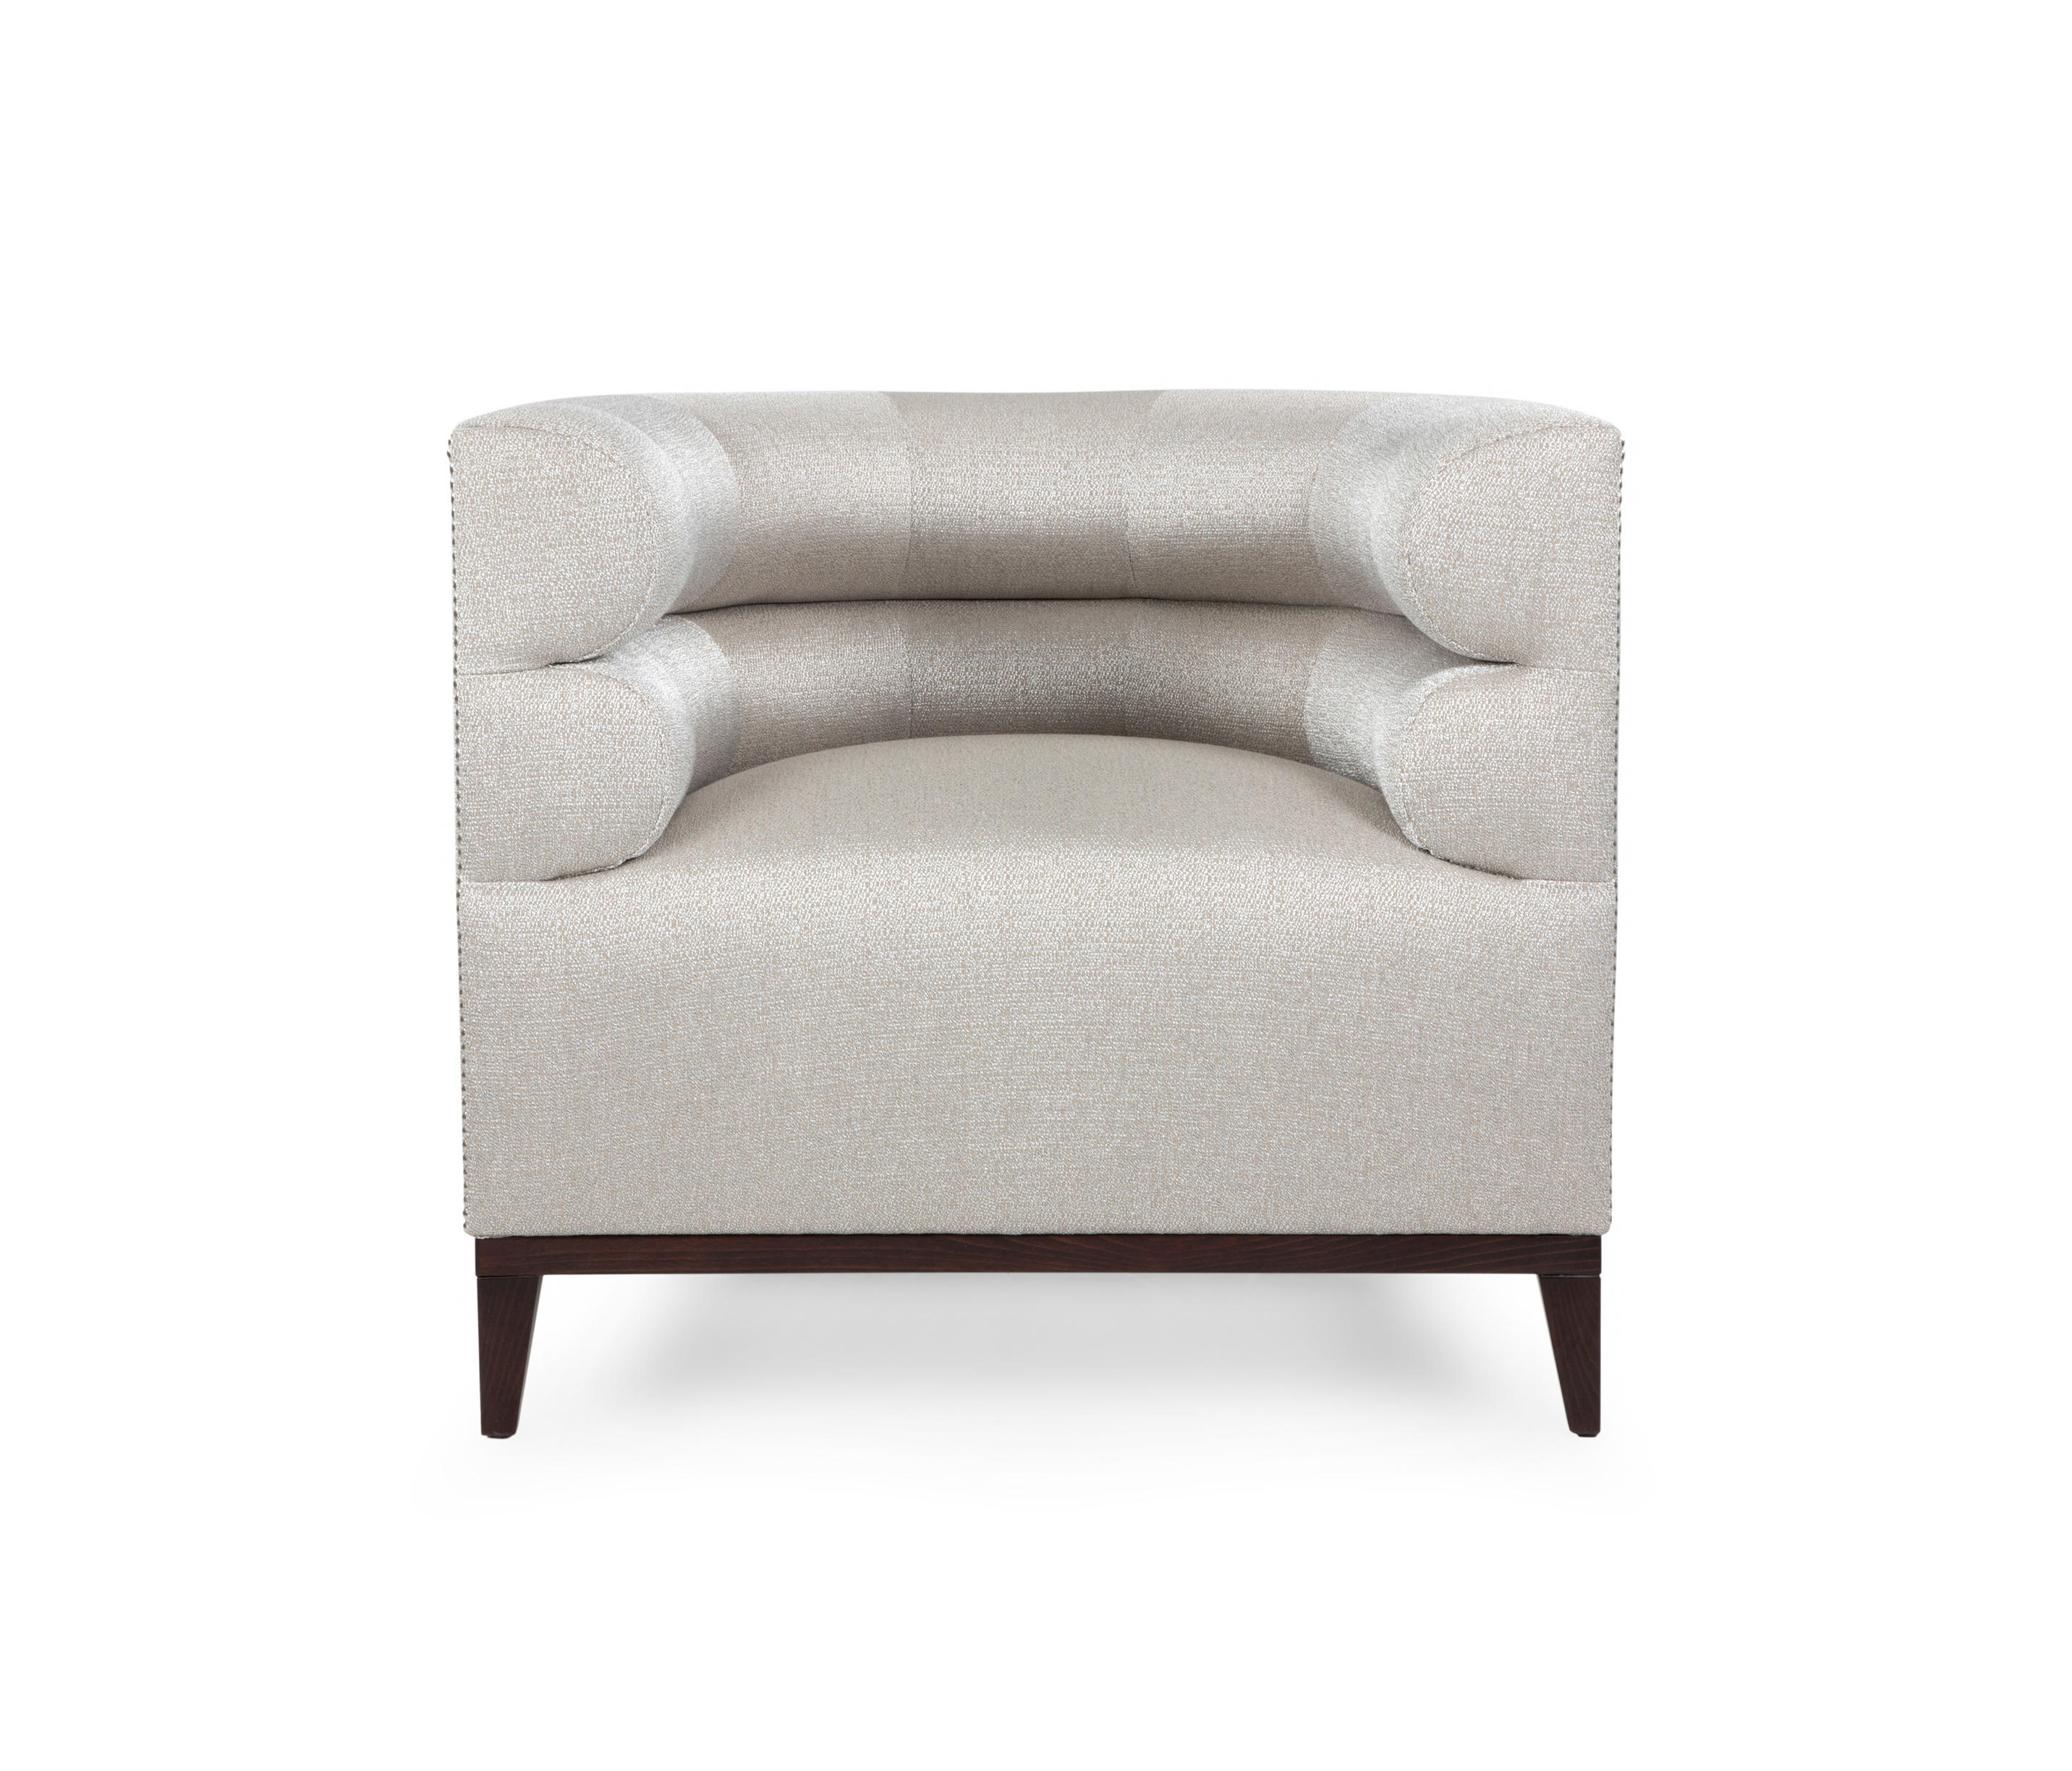 ... Giovanni Occasional Chair By The Sofa U0026 Chair Company Ltd | Lounge  Chairs ...